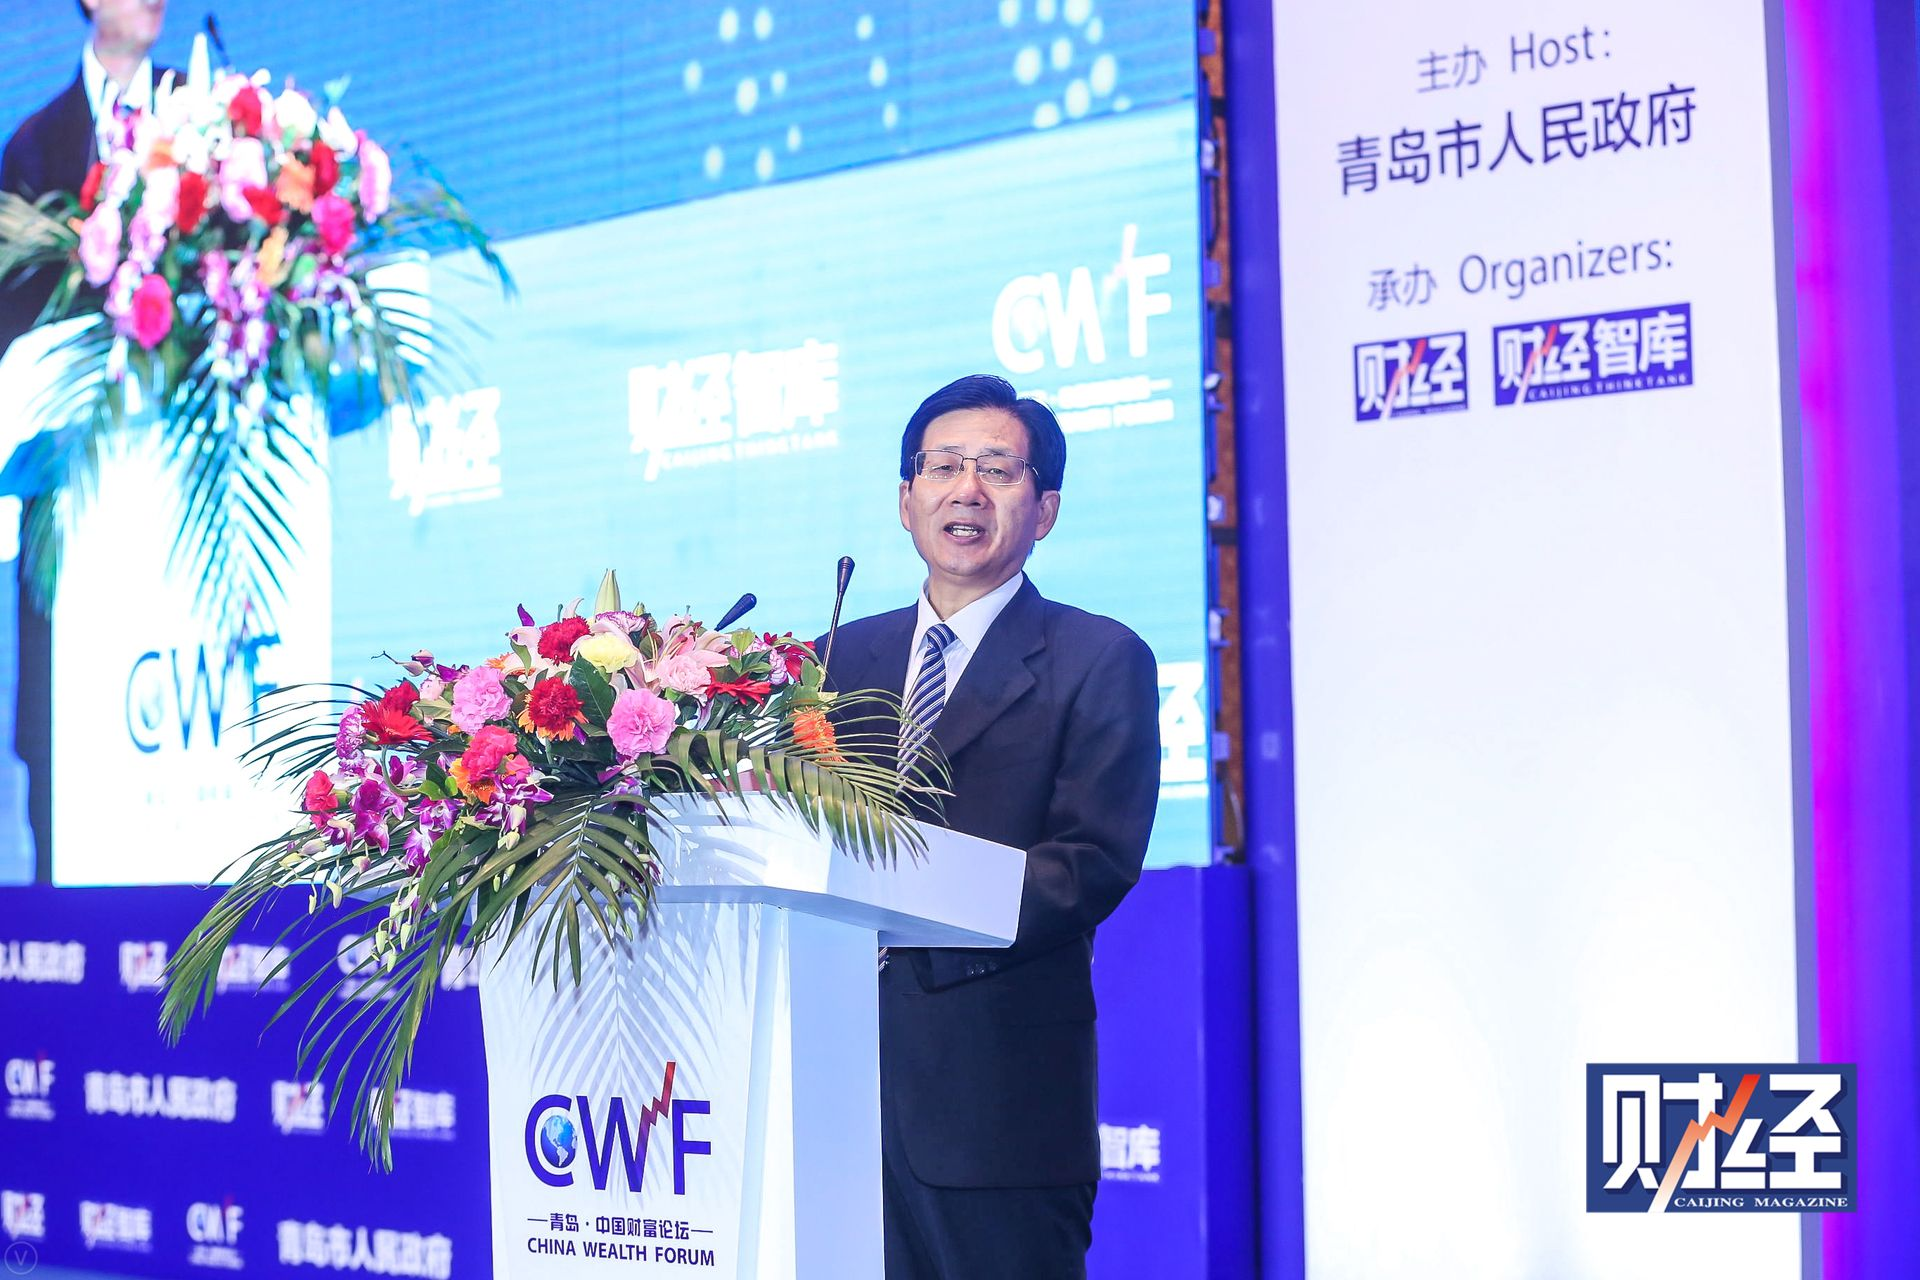 Sun Jiye, vice governor of Shandong province, speaks at the opening of the China Wealth Forum 2018 in Qingdao on July 7, 2018. [[Photo courtesy of Caijing Magazine]